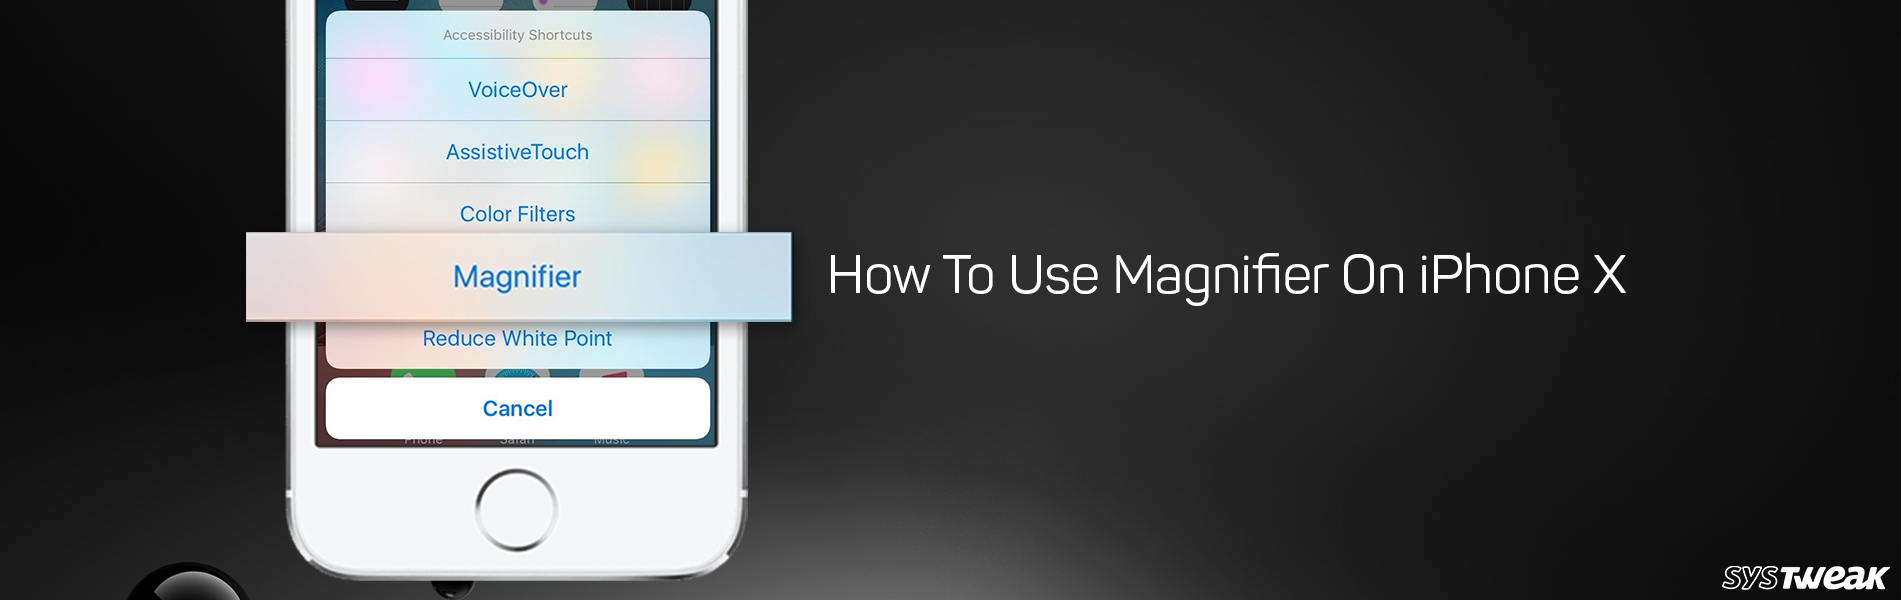 How To Use Magnifier On iPhone X